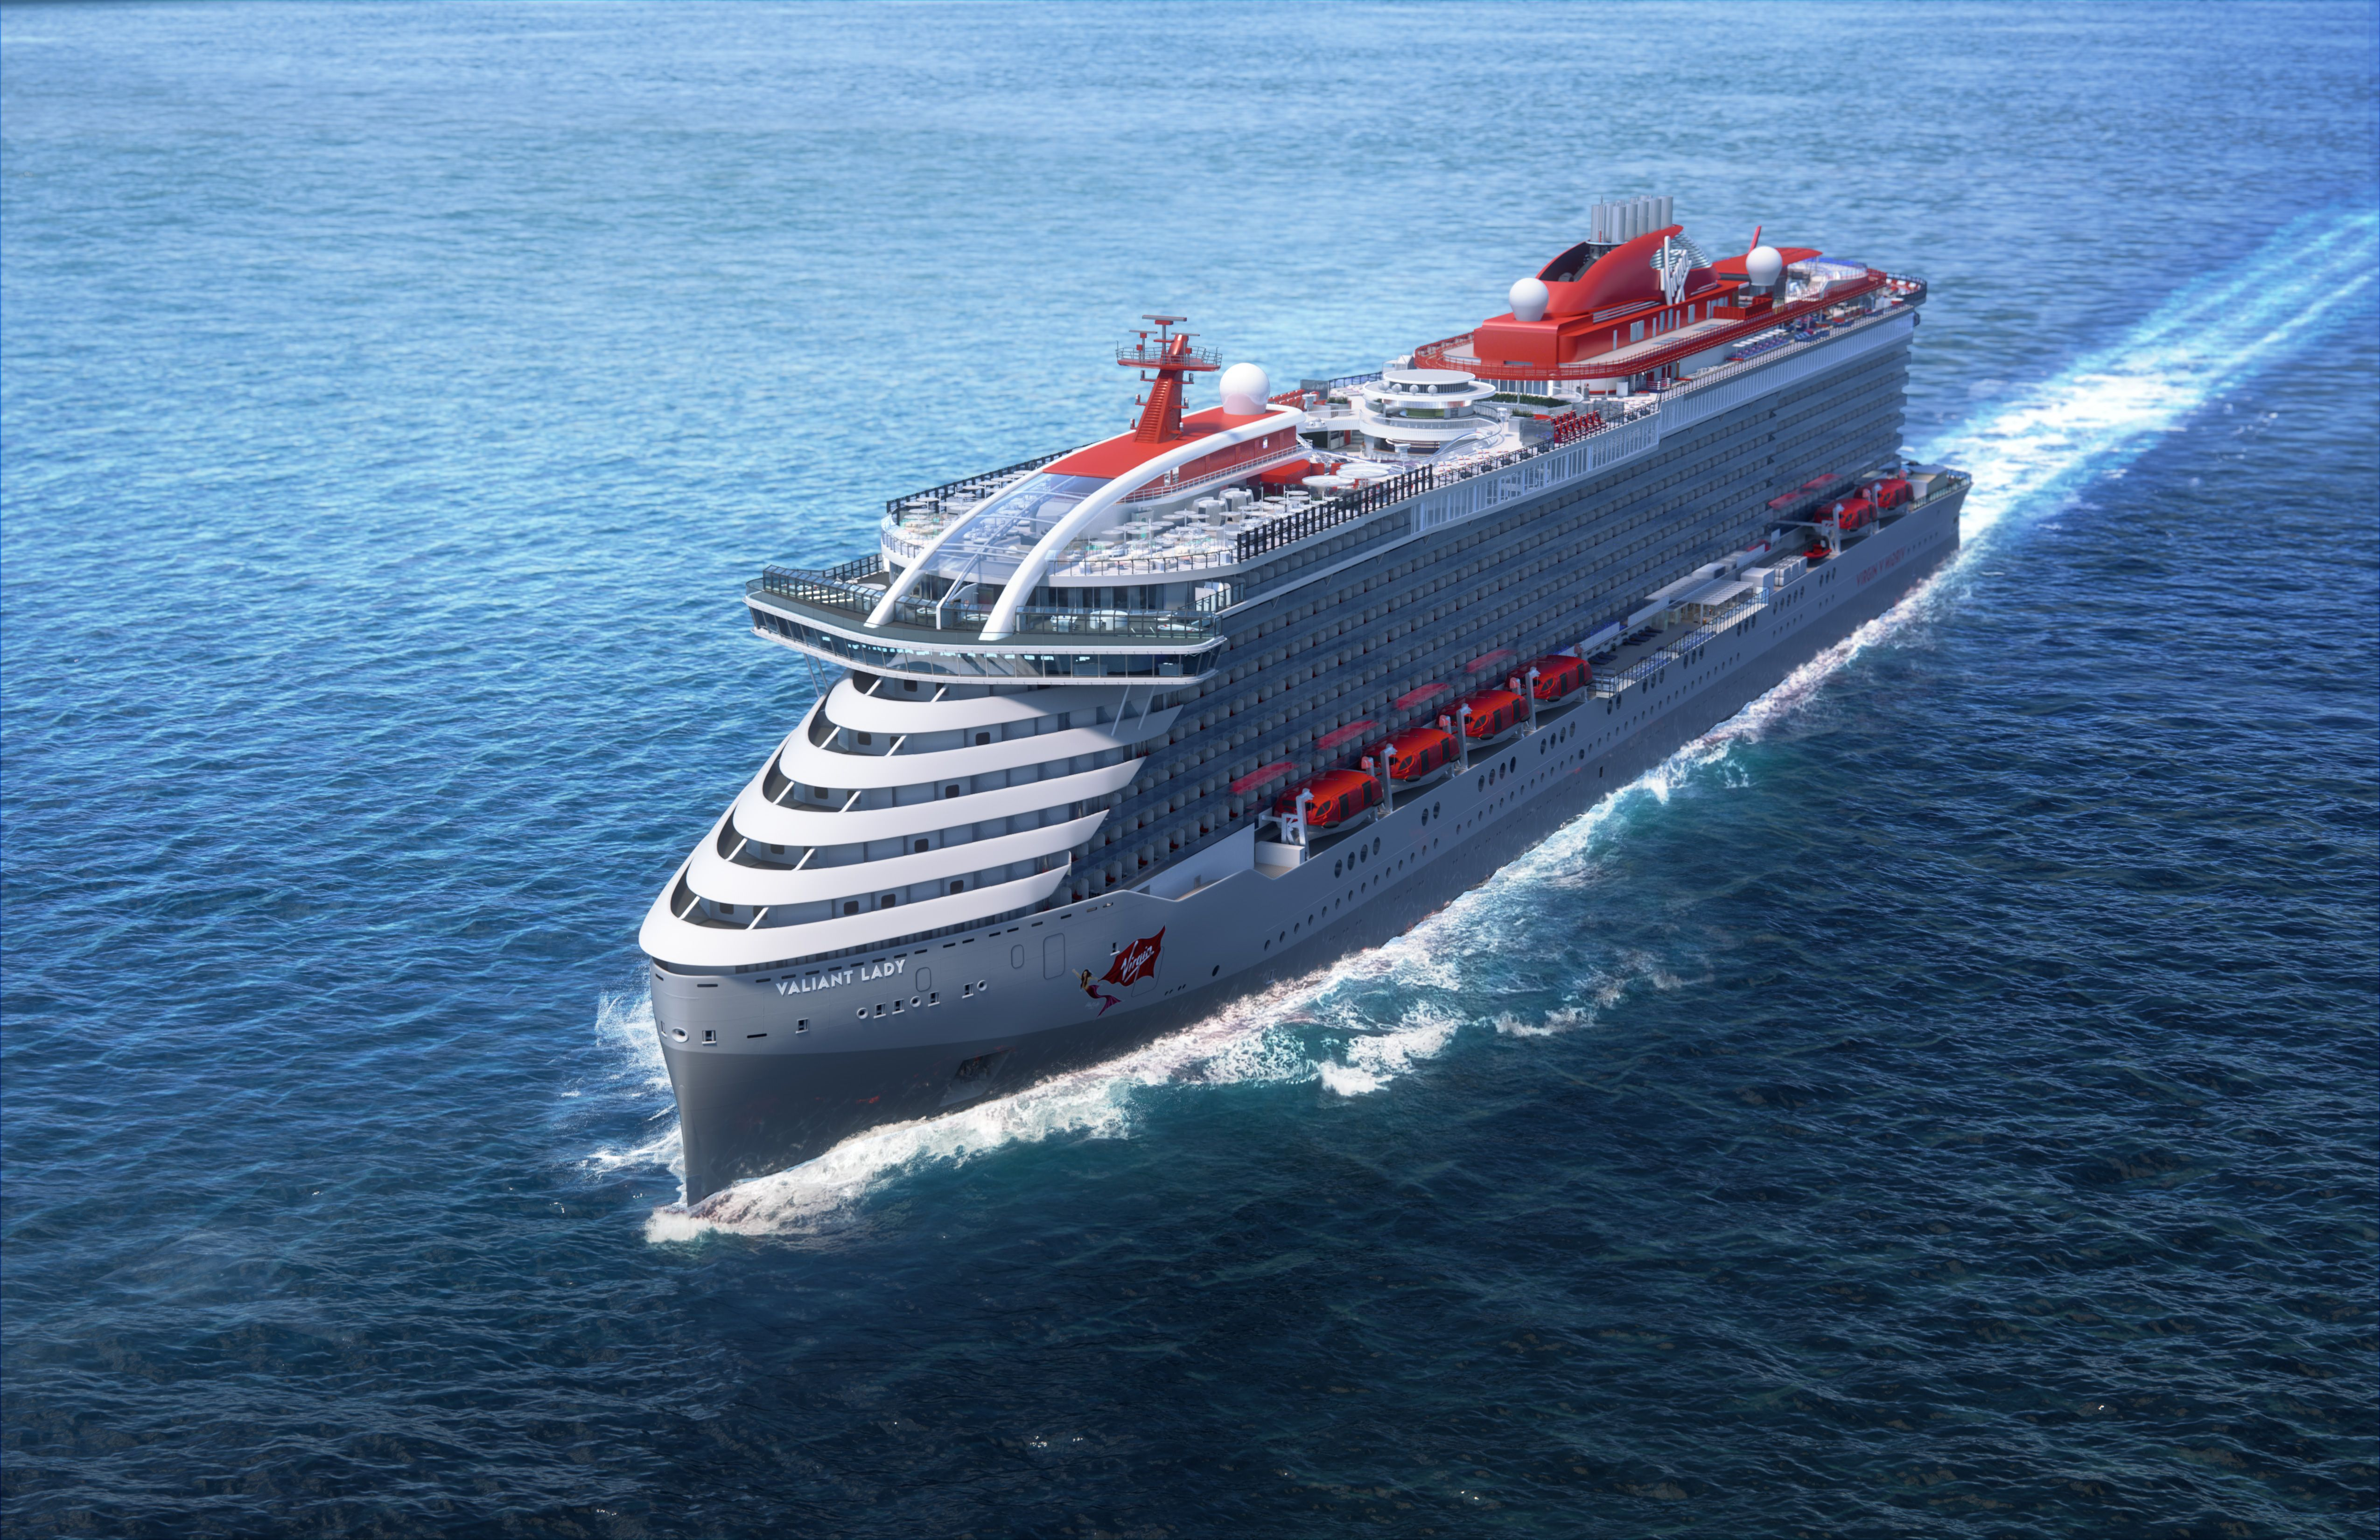 Here's a First Look at Virgin's Next Adults-Only Cruise Ship, the Valiant Lady